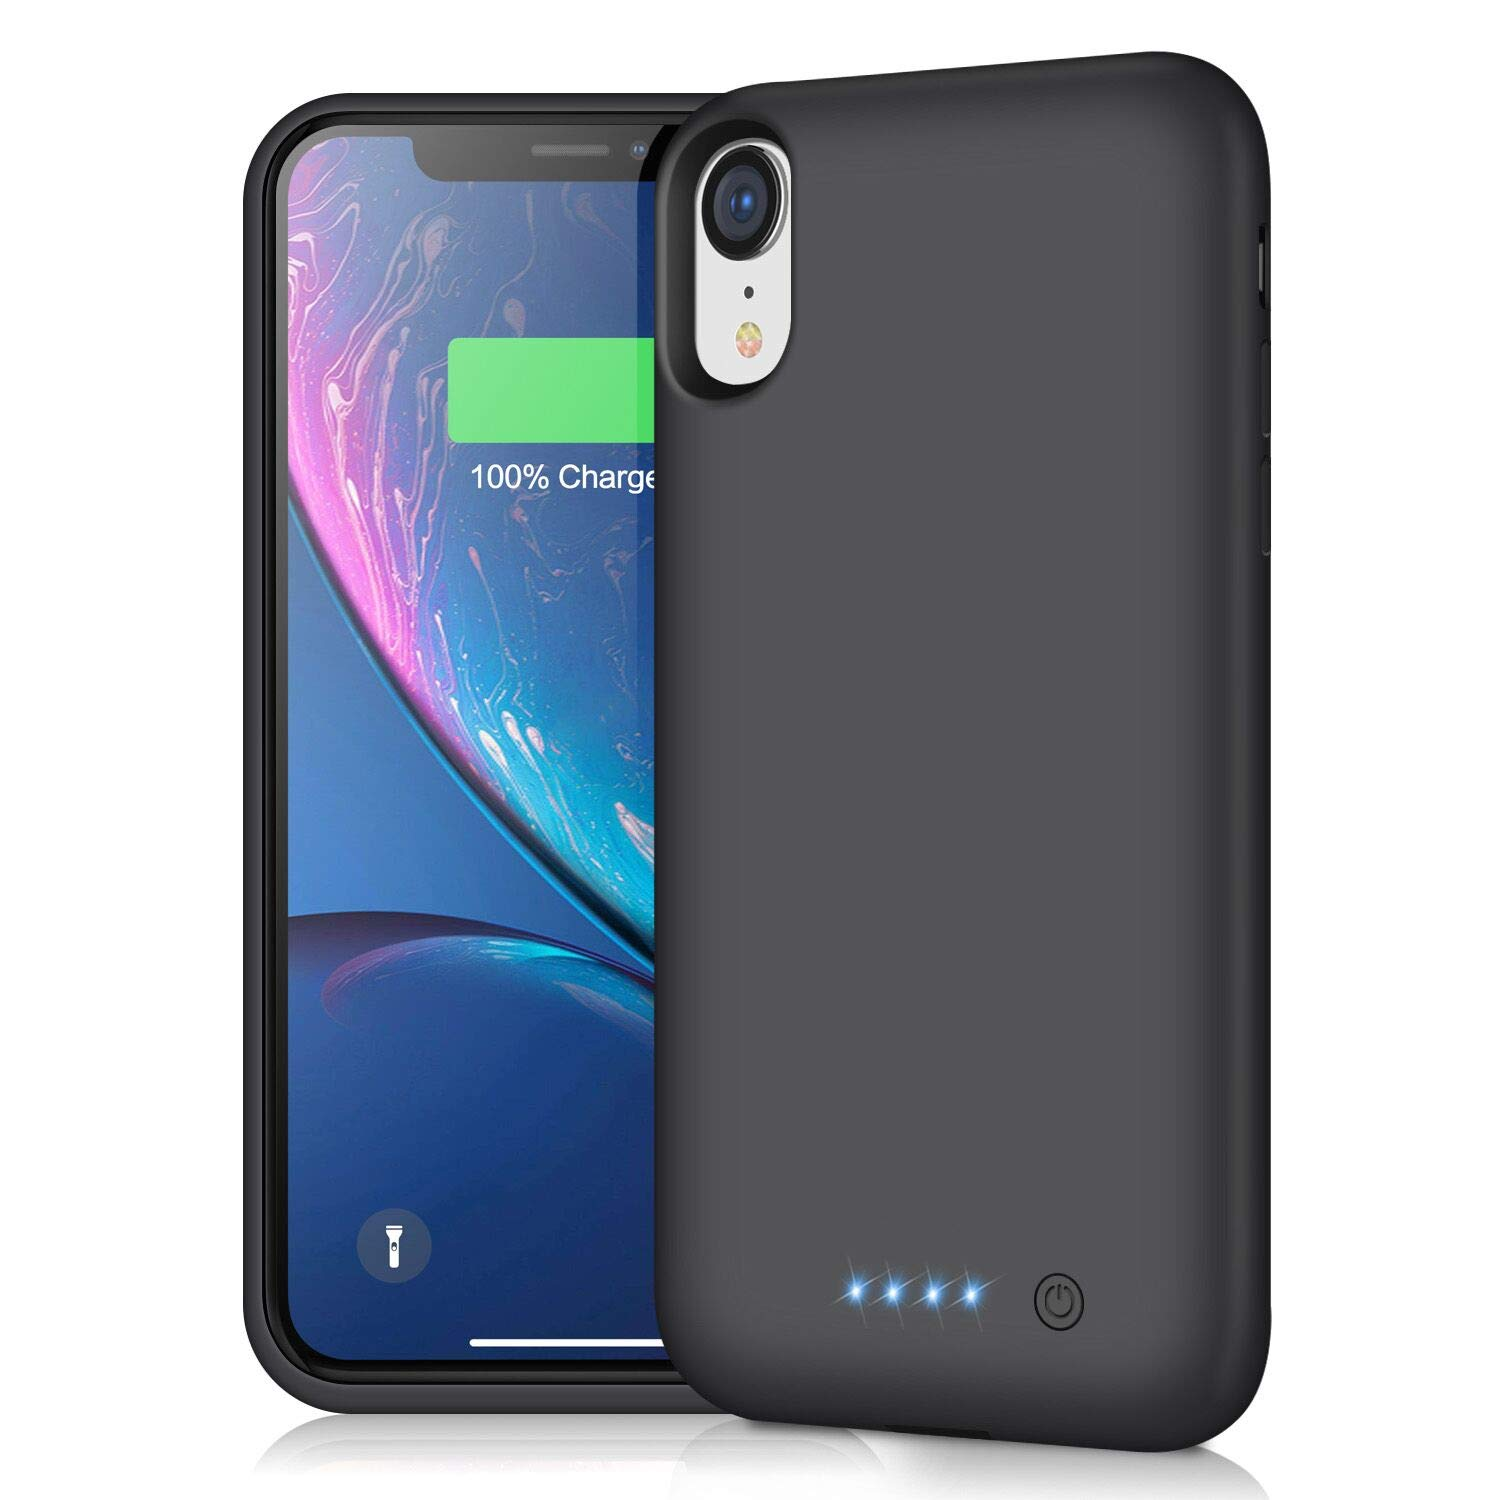 Pxwaxpy Battery Case for iPhone XR, 6800mAh Portable Protective Charging Case for iPhone XR Extended Rechargeable Charger Case Battery Pack Compatible with Apple XR Power Bank Cover(6.1 inch), Black by Pxwaxpy